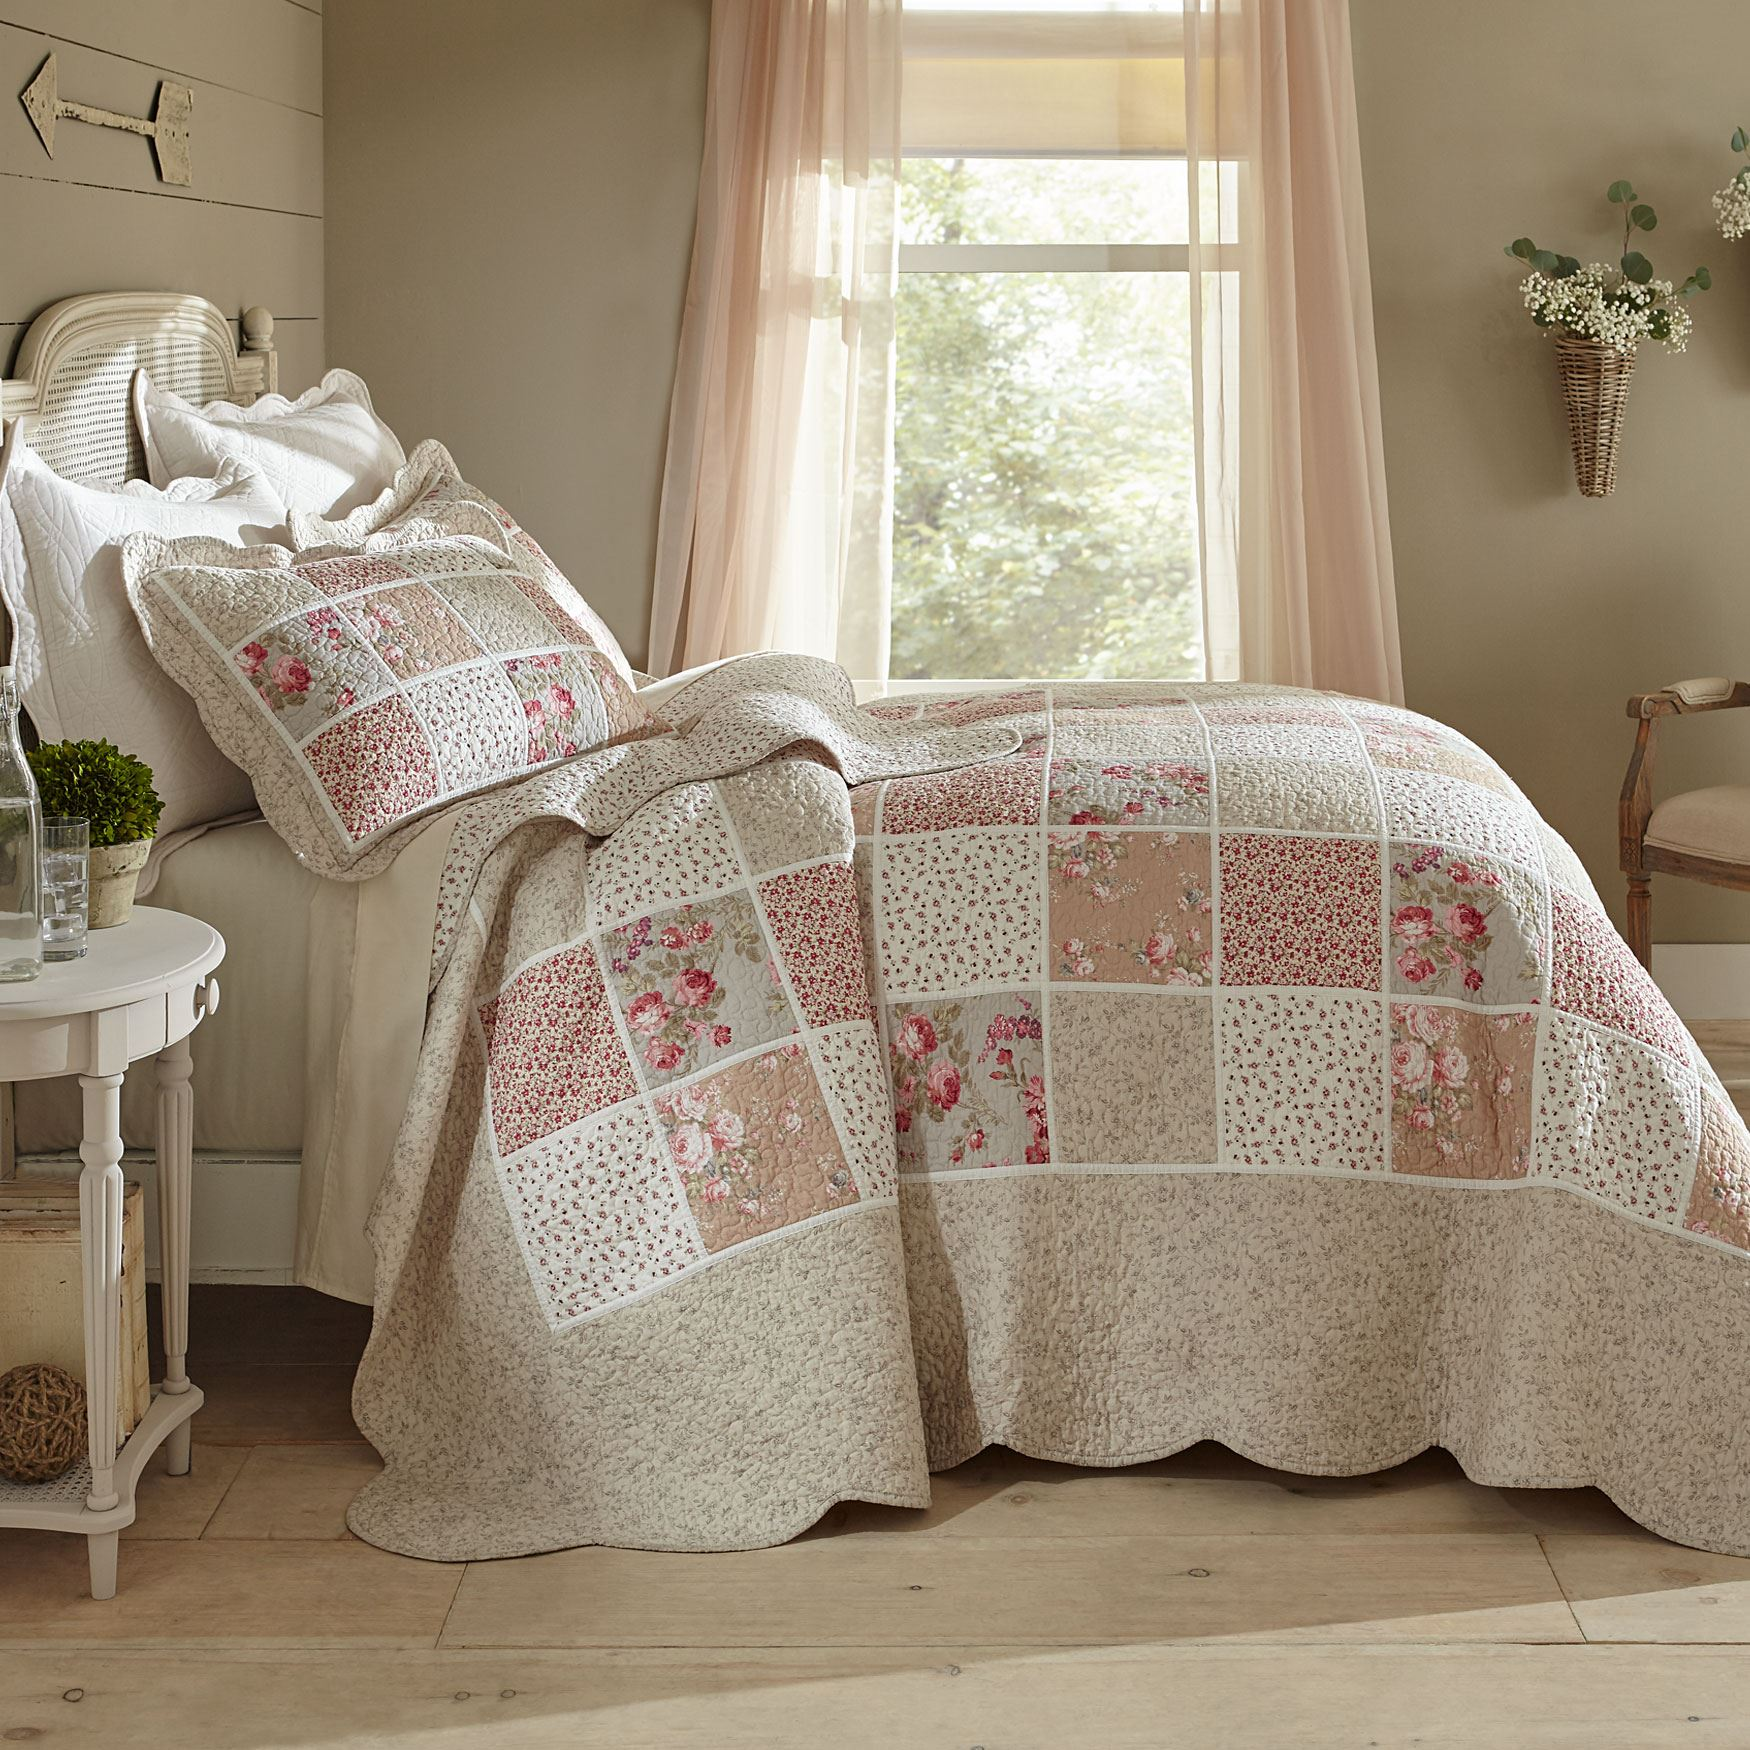 Isabella Floral Printed Patchwork Bedspread Collection,